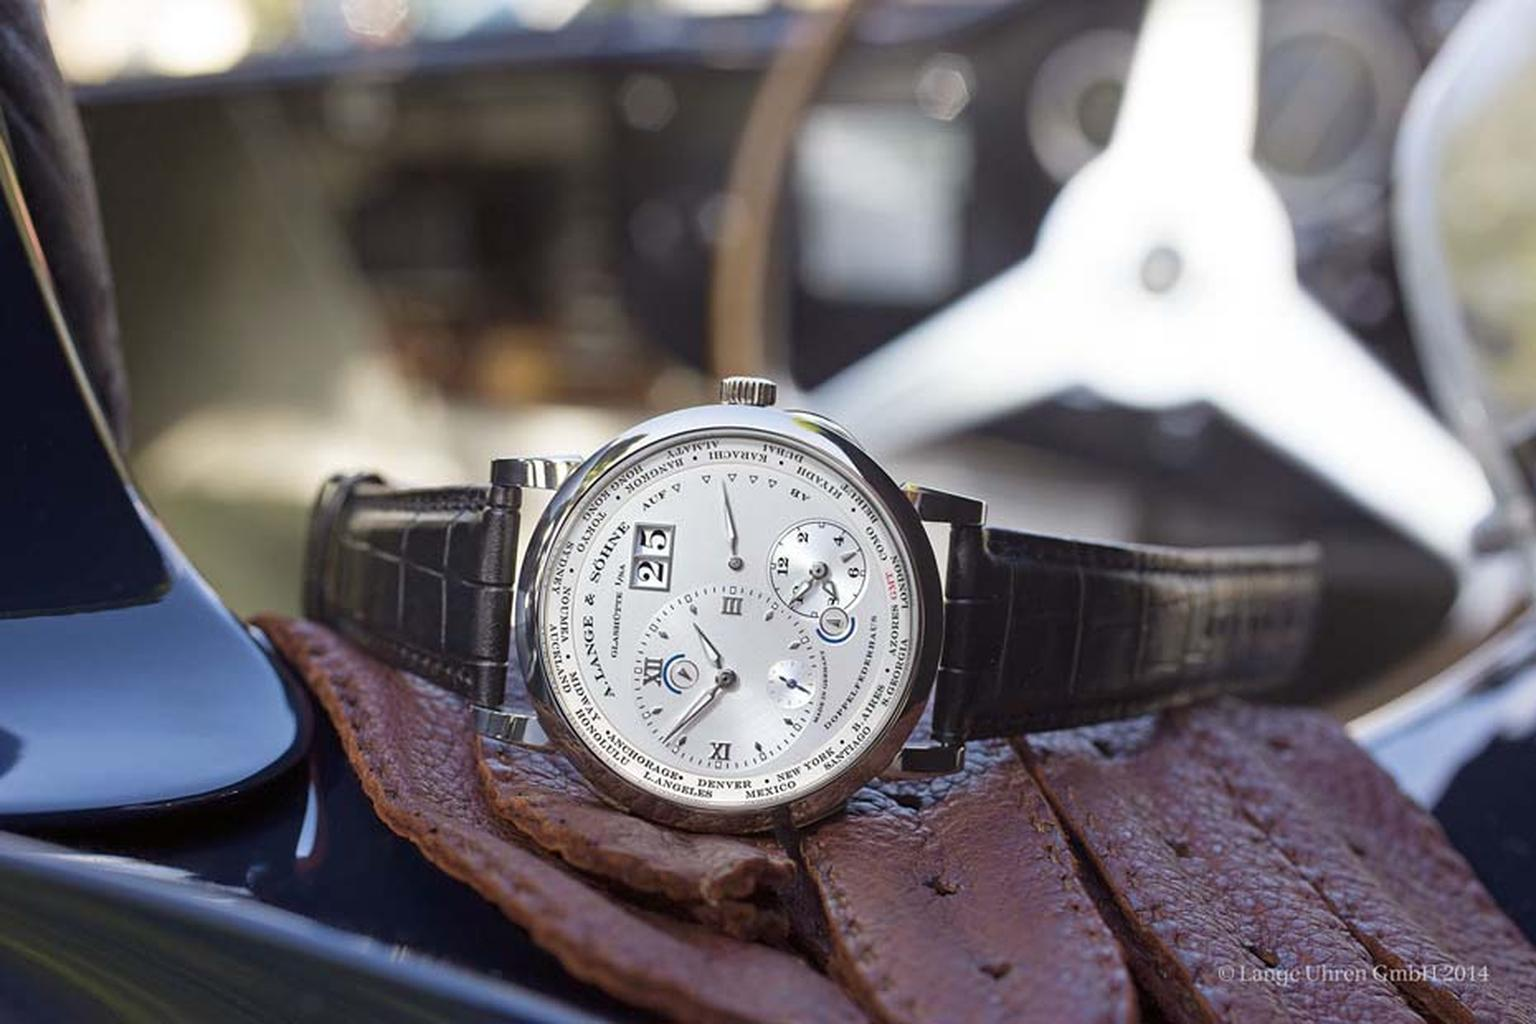 For the last three years, A. Lange & Söhne has offered a unique watch to the owner of the winning car at the Concorso d'Eleganza car show. In 2014, the prize was the Lange & Söhne Concorso d'Eleganza 1 Time Zone watch in white gold.